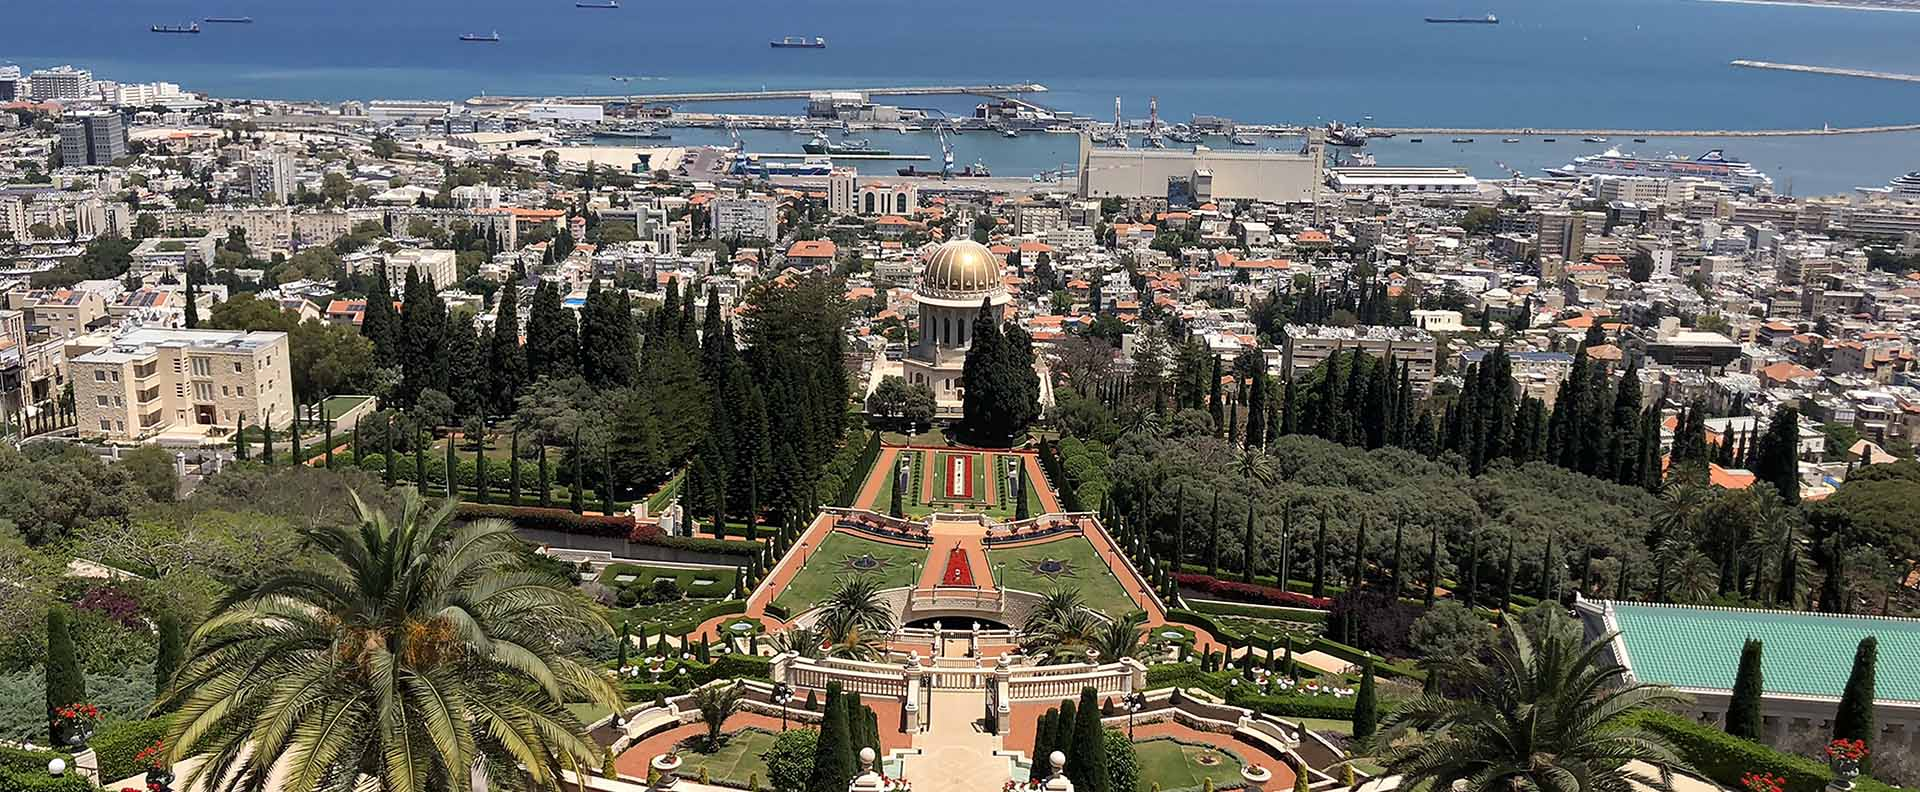 The Baha'i Gardens in Haifa from above